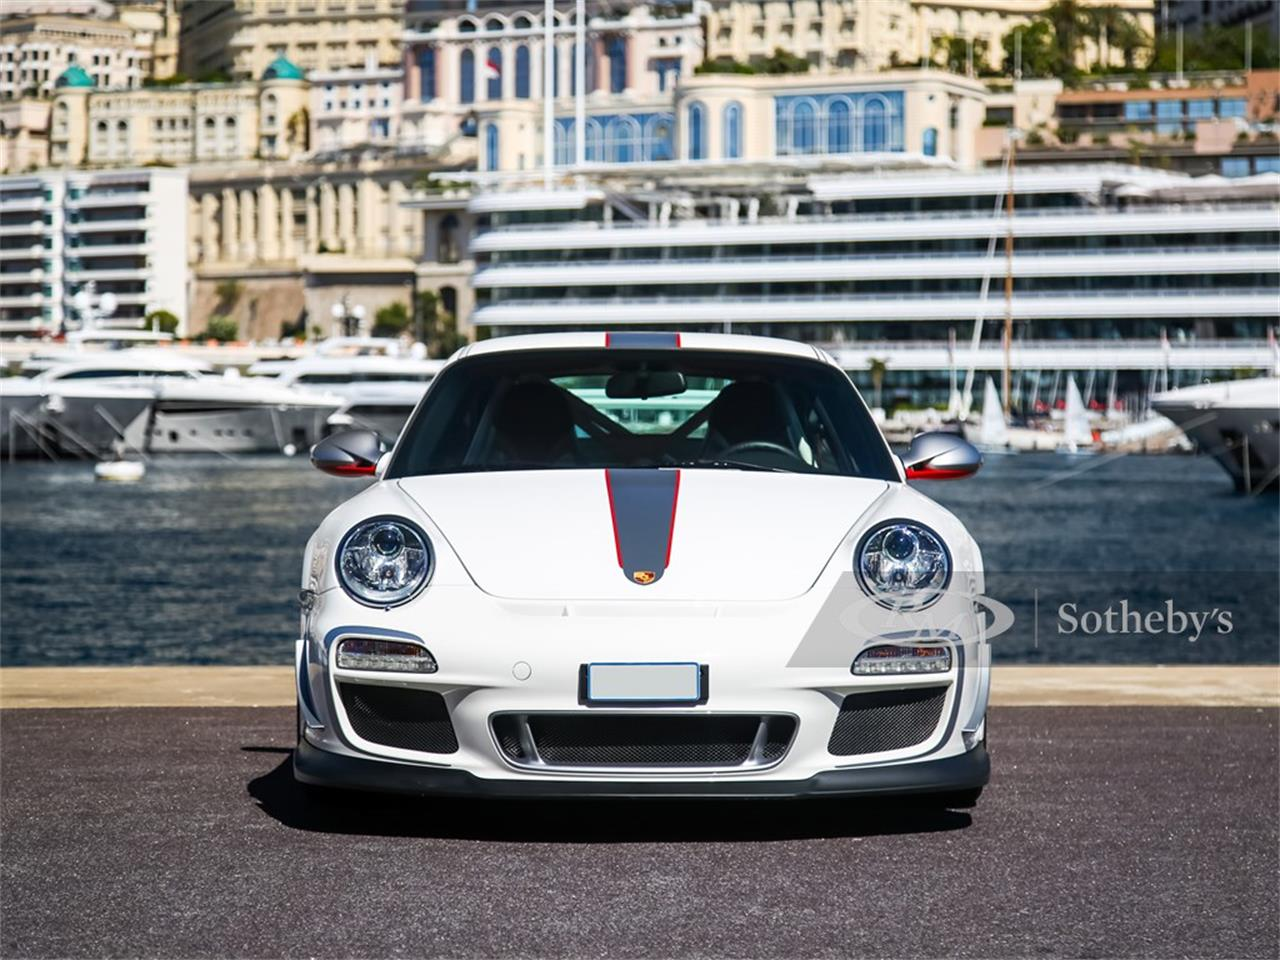 2011 Porsche 911 GT3 RS 4.0 (CC-1361387) for sale in London, United Kingdom